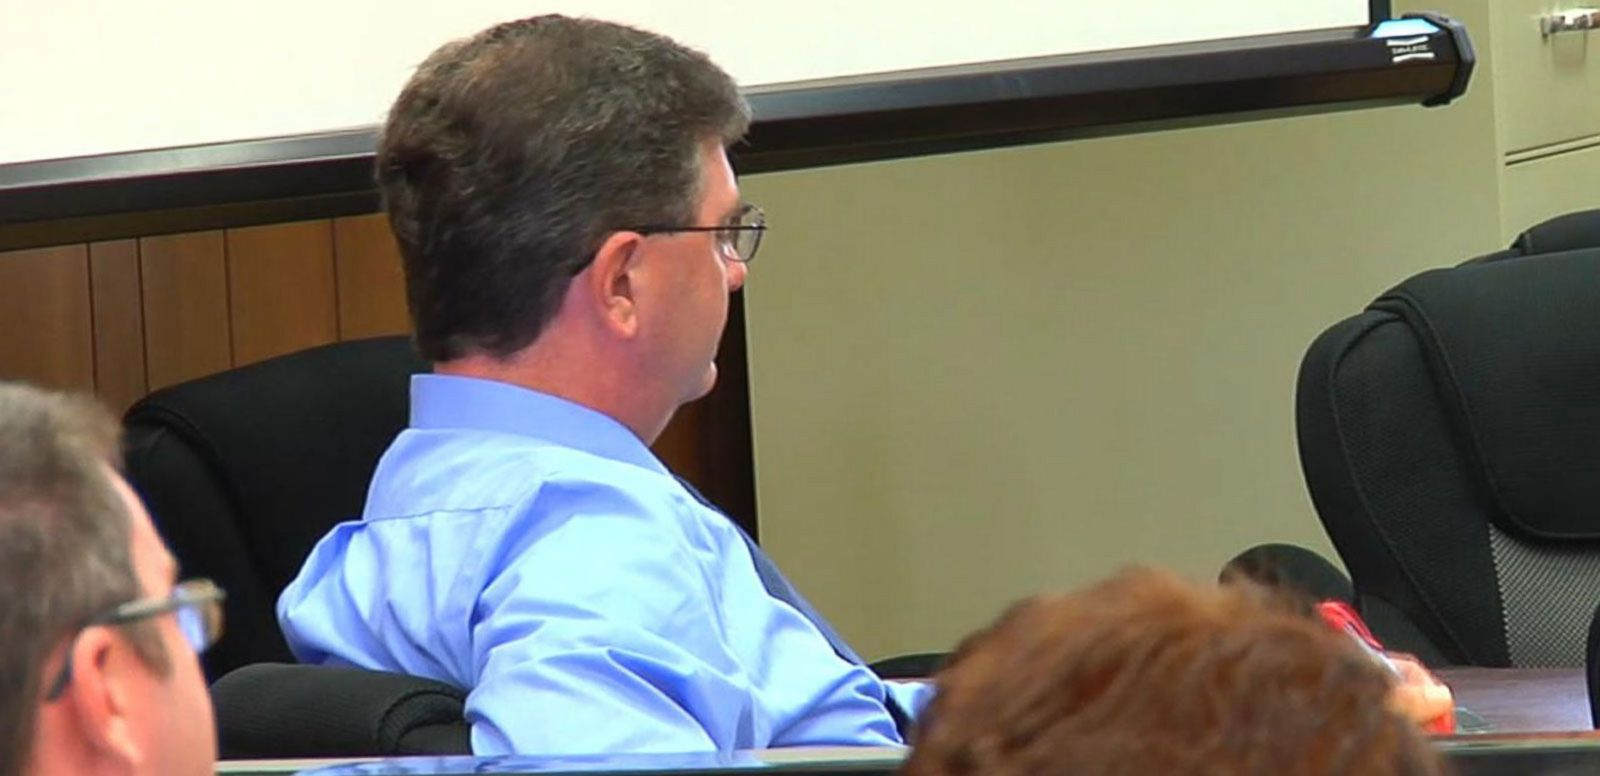 VIDEO: Jury Set to Deliberate in Tennessee Neighbor Shooting Case